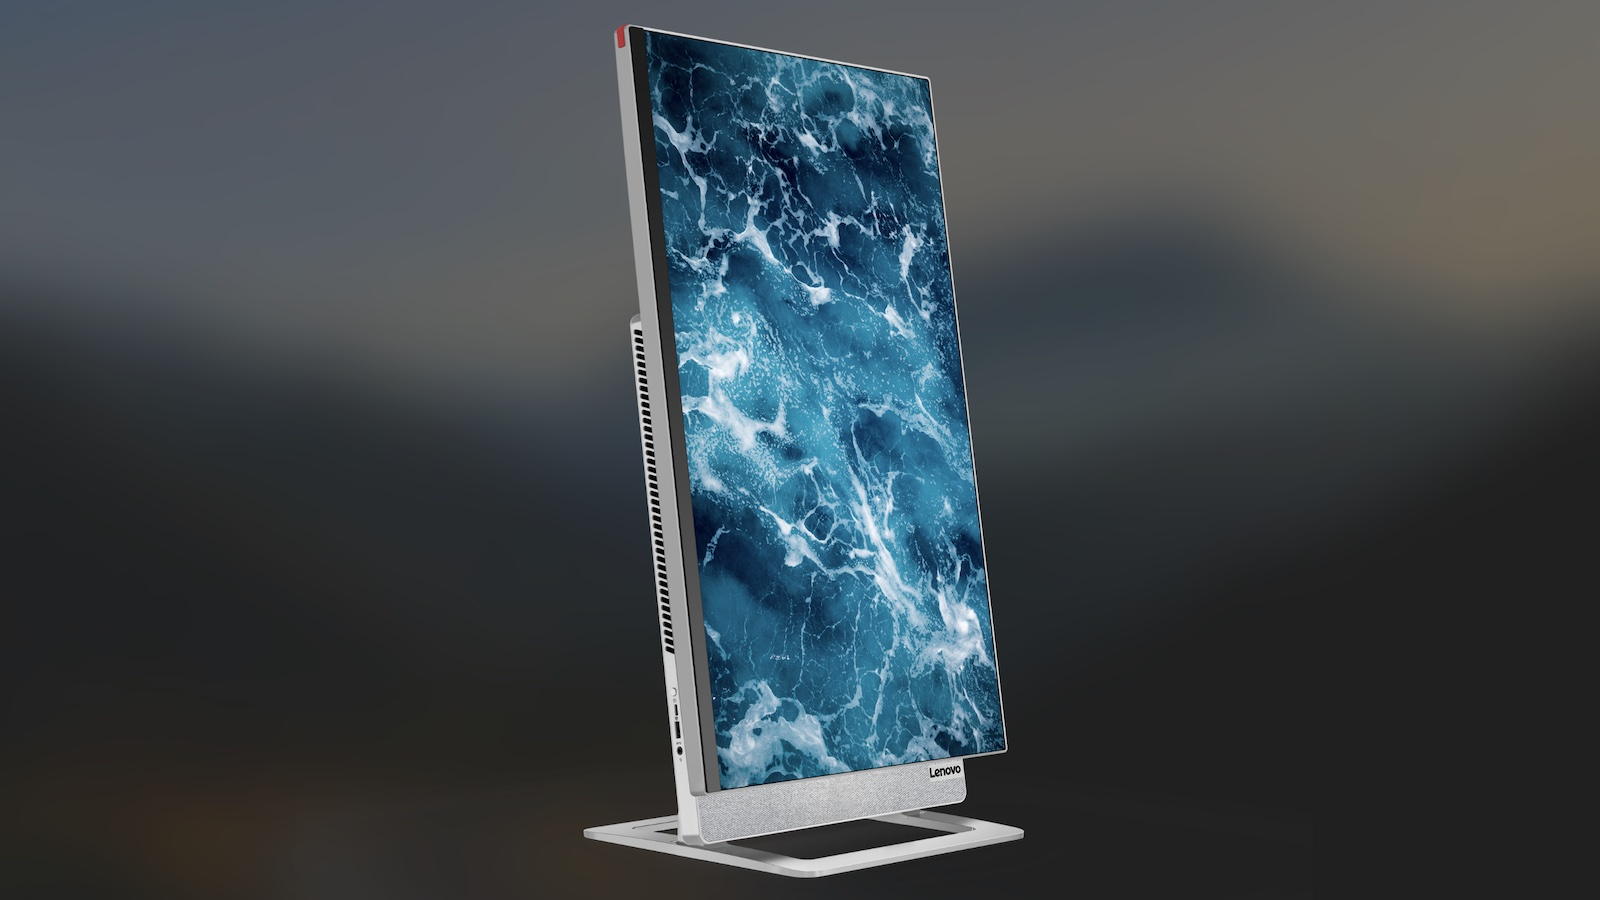 Lenovo Yoga AIO 7 all-in-one desktop PC has a rotating display that takes up minimal space